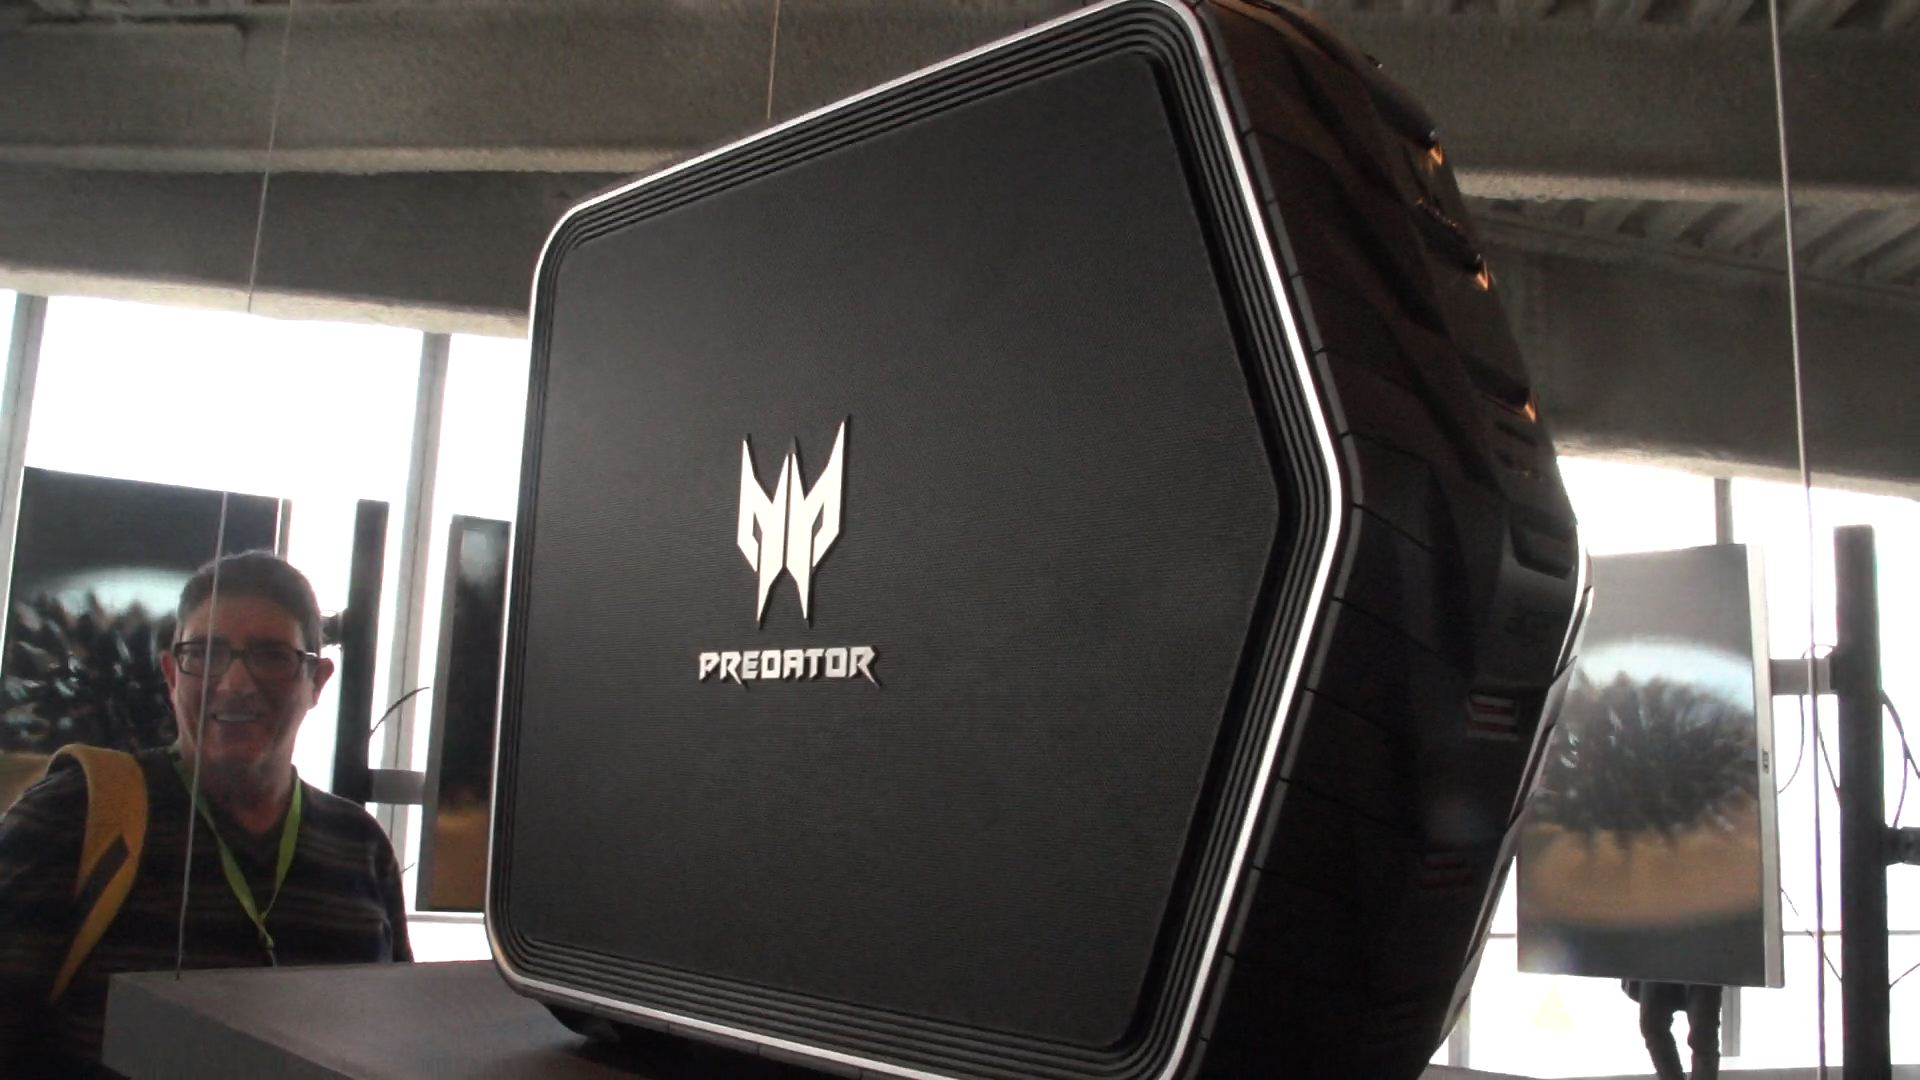 Video: New Predator gaming line from Acer includes a curved G-Sync display